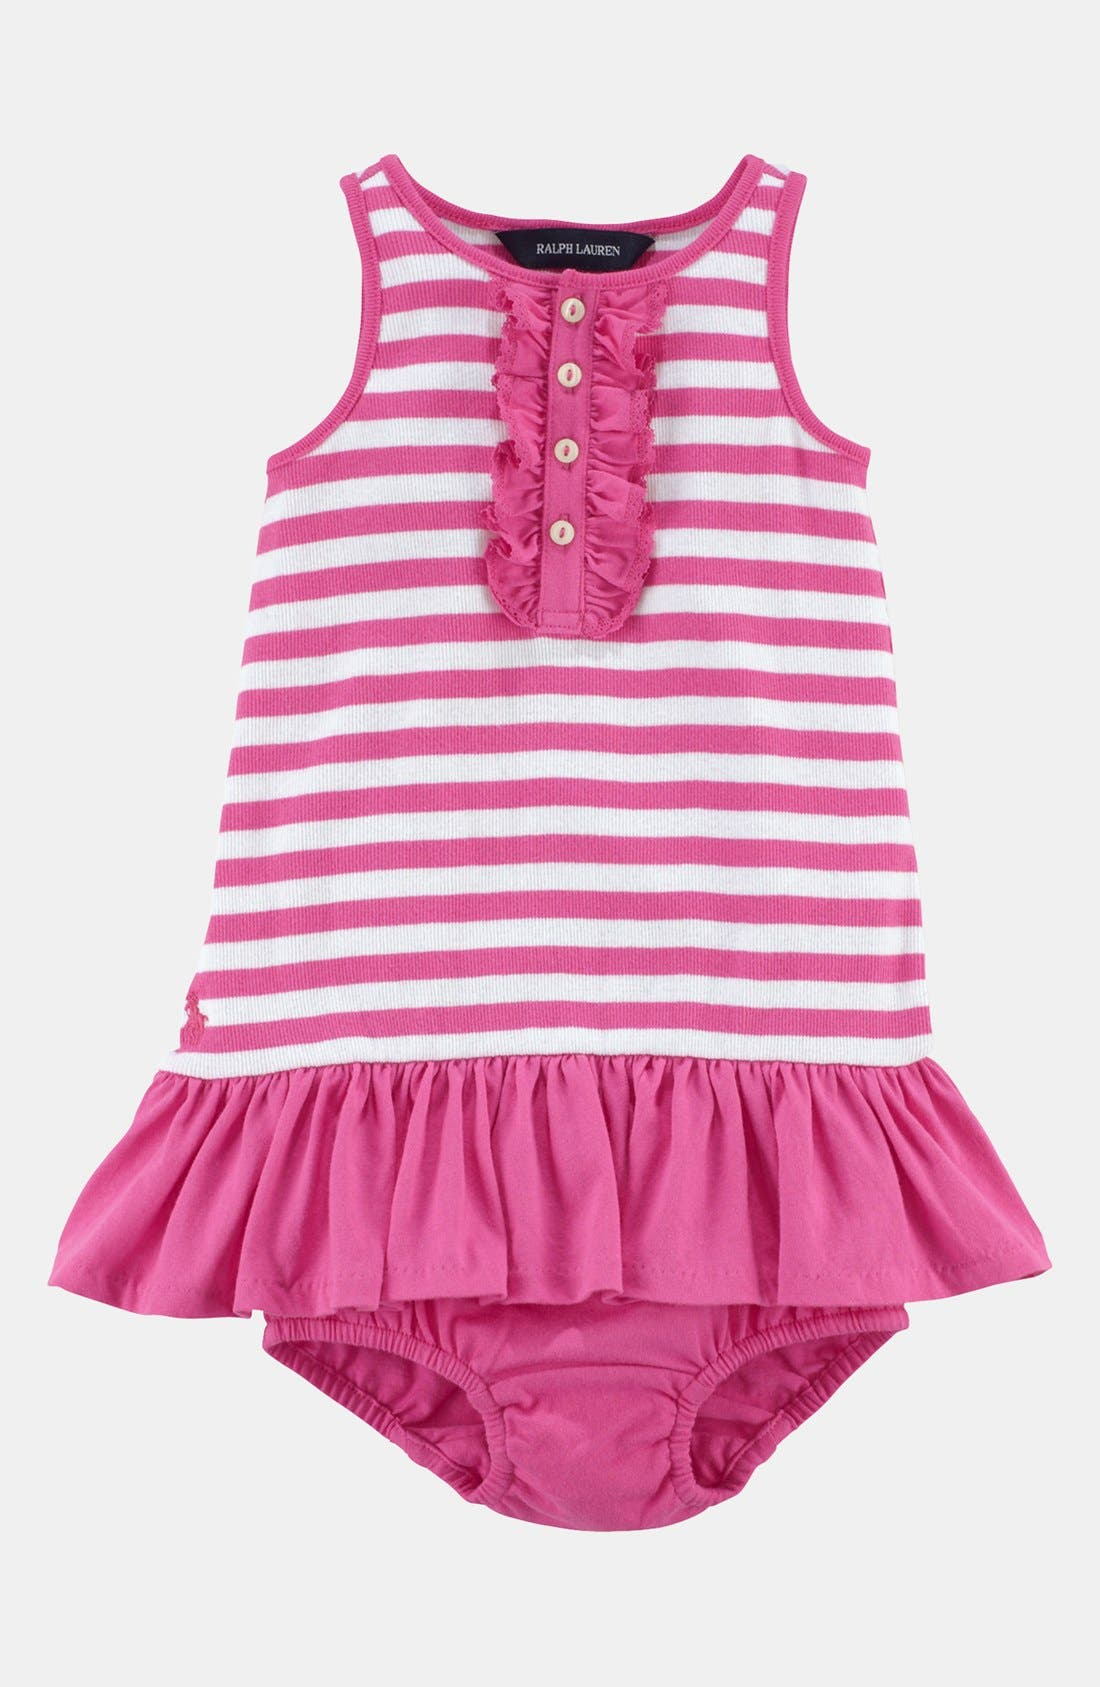 Alternate Image 1 Selected - Ralph Lauren Ruffle Henley Dress & Bloomers (Baby)